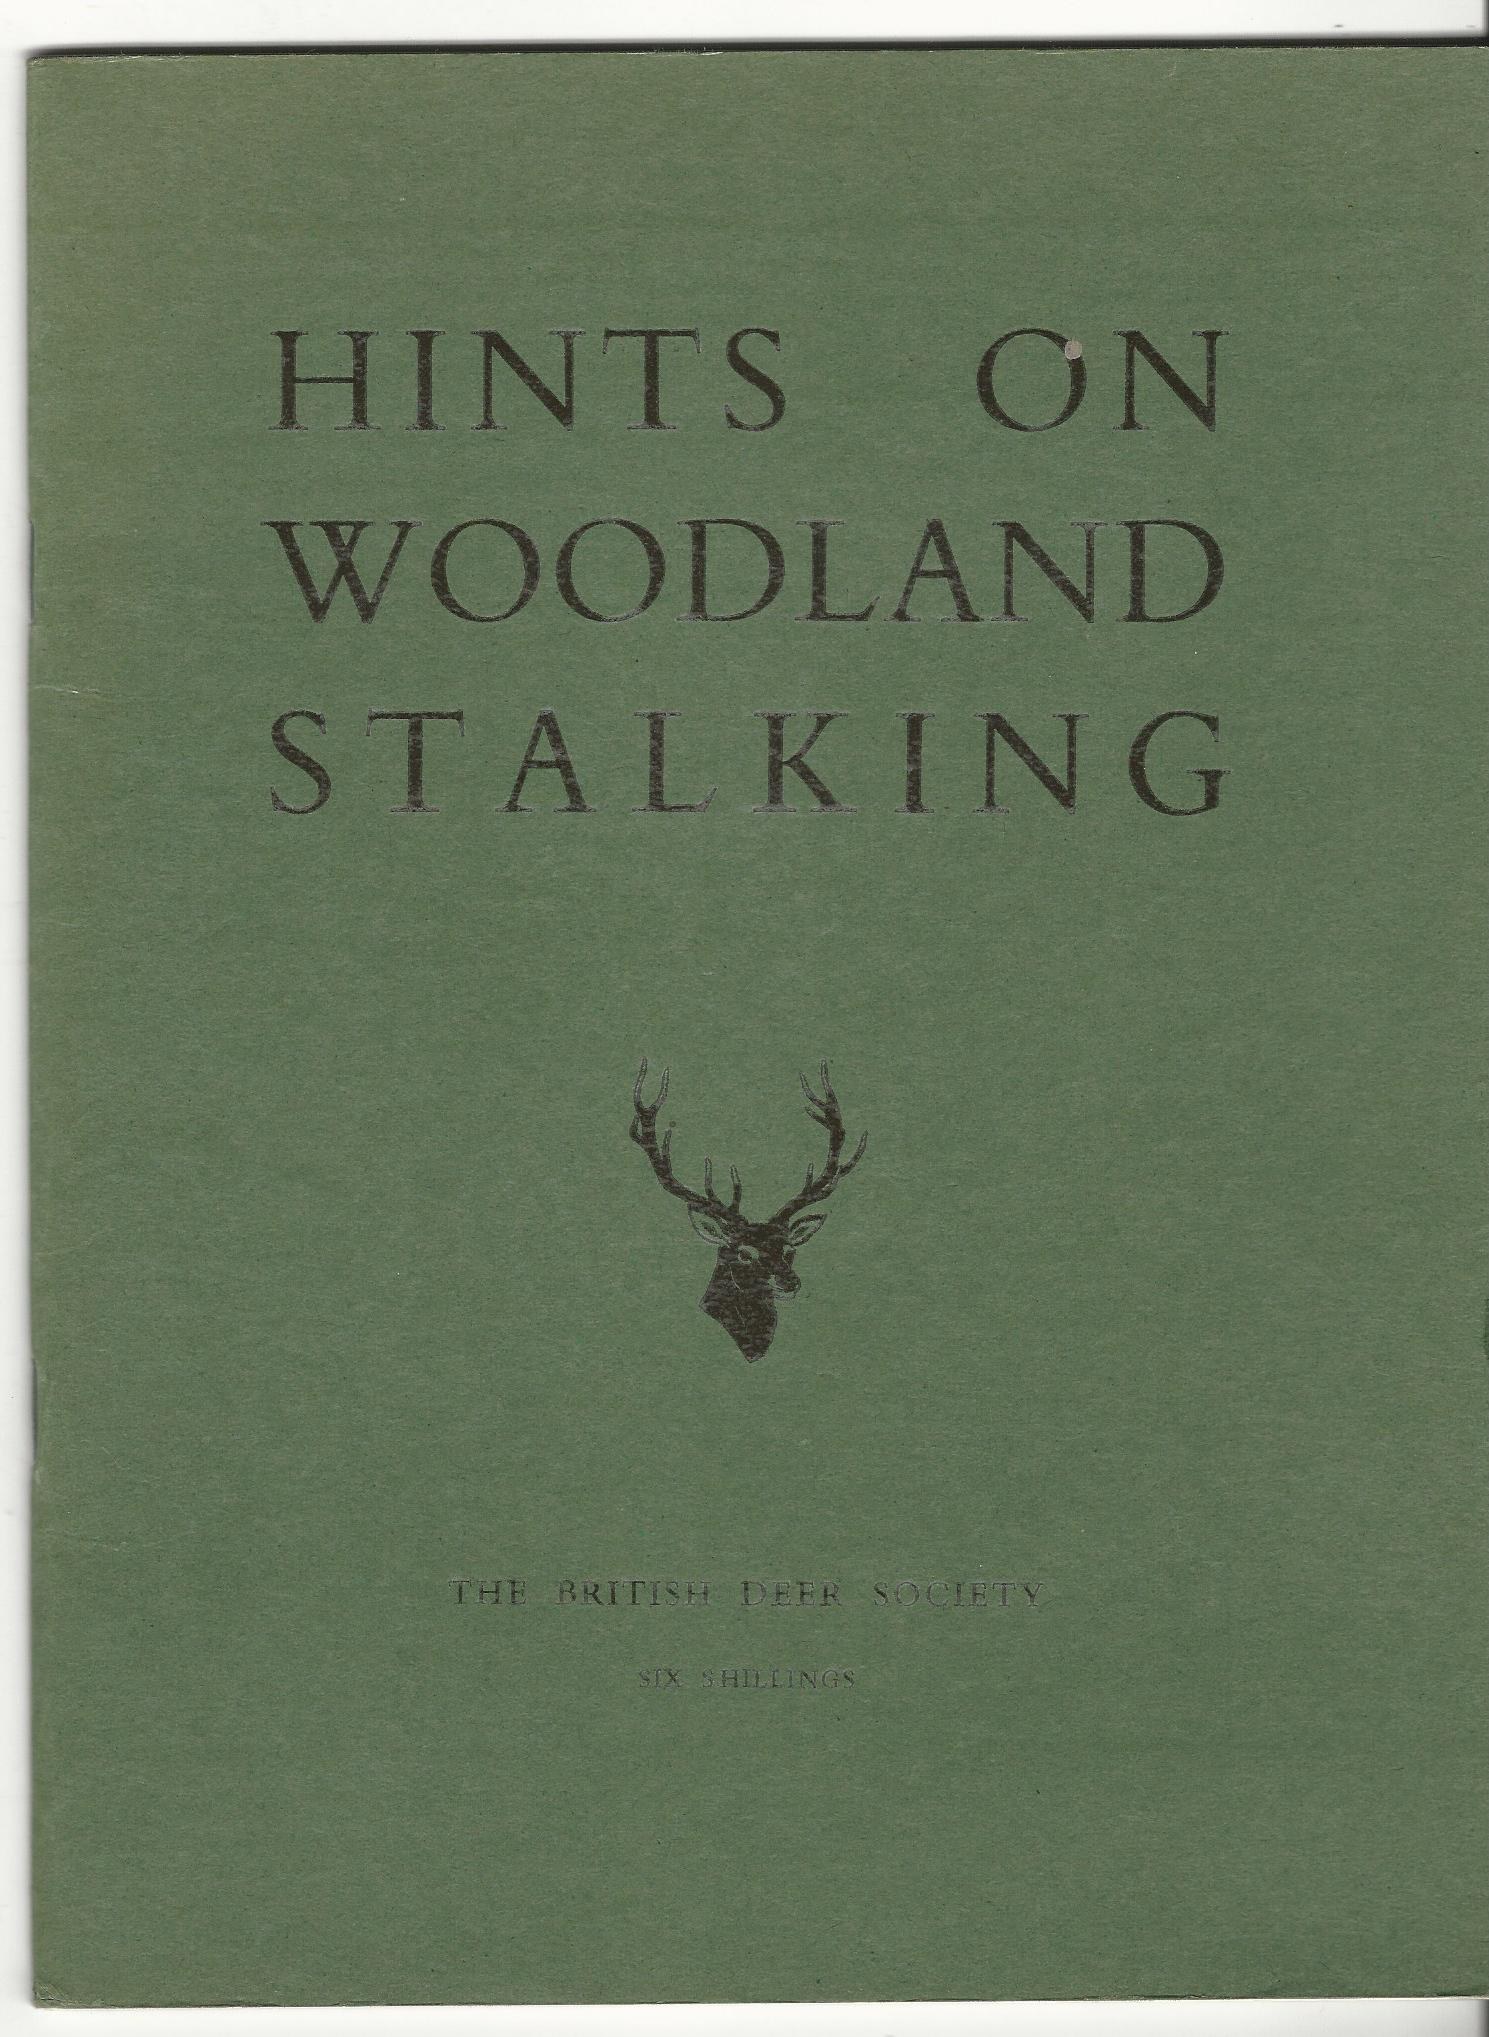 Image for Hints on Woodland Stalking